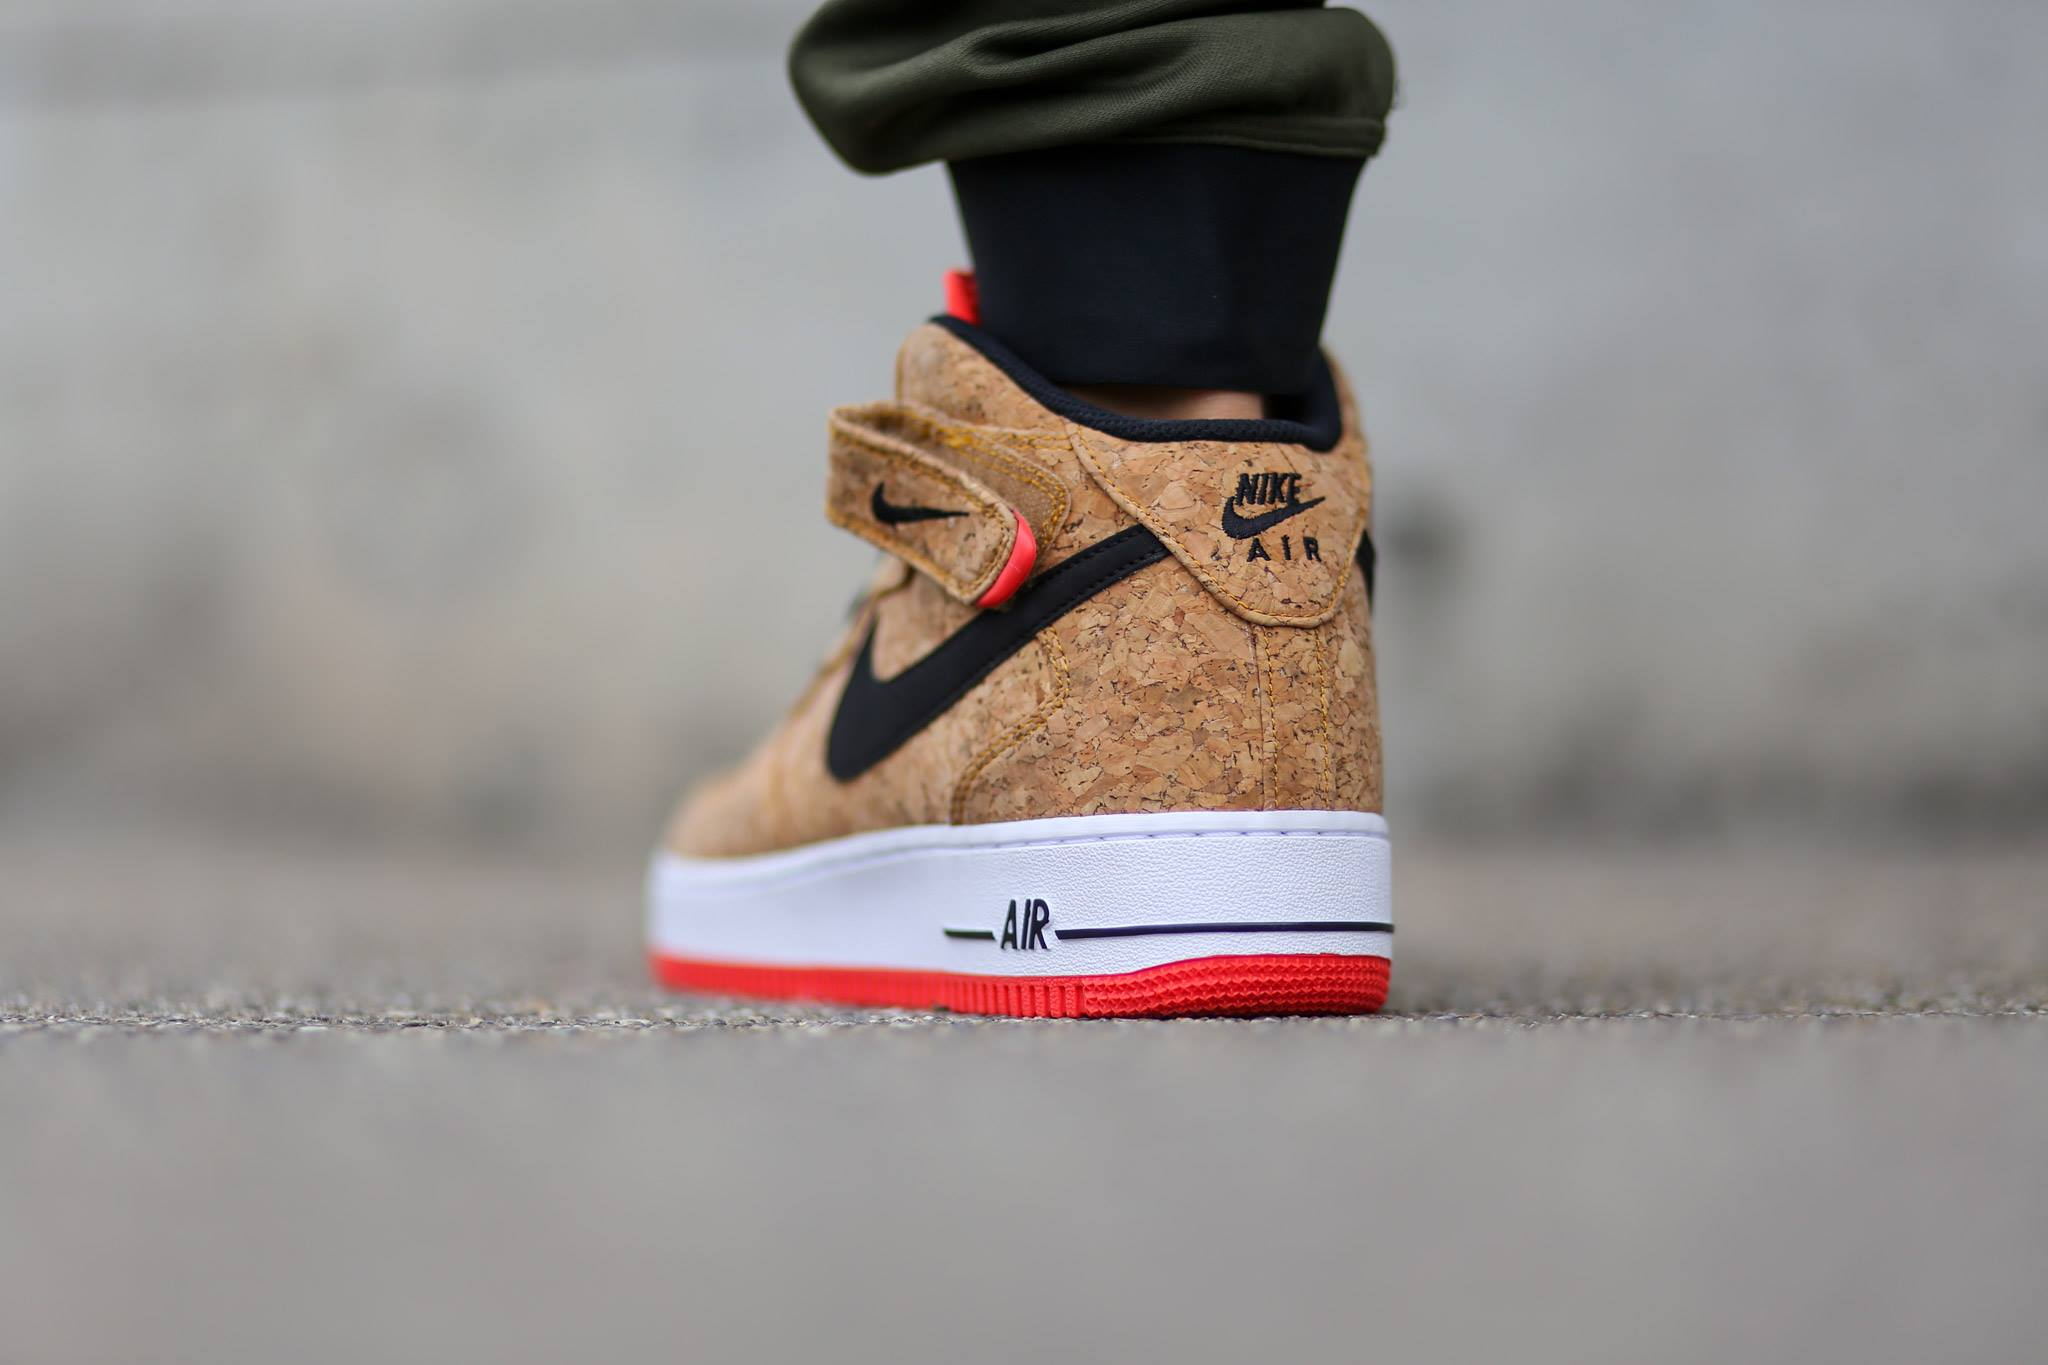 low priced dc032 15ca5 2048 x 1365 sneakersaddict.com. Nike Air Force One Mid ...